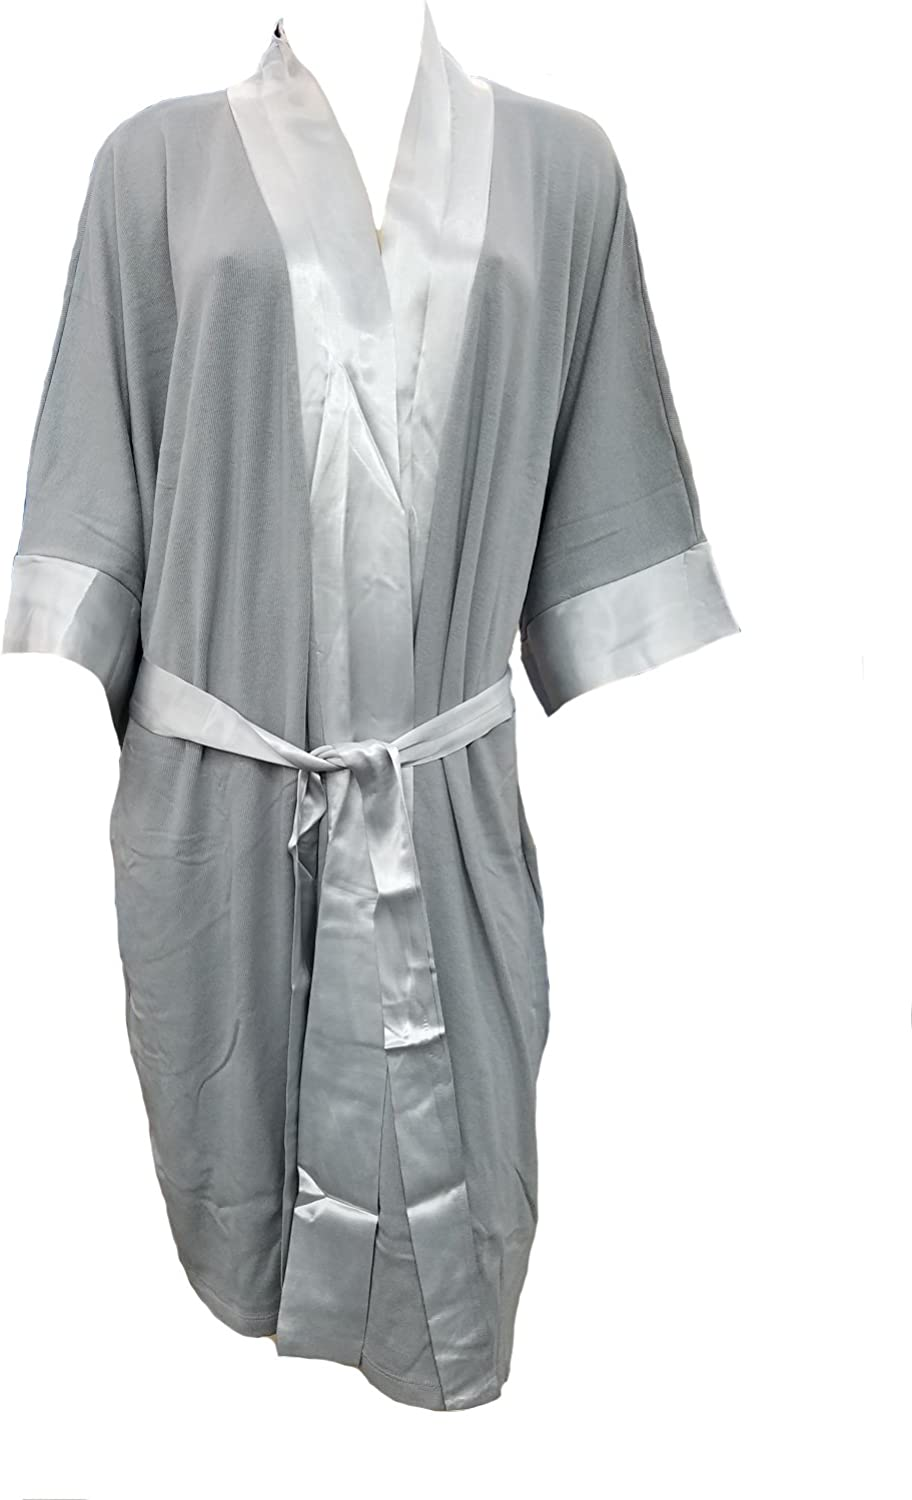 PJ Harlow Knit Robe with Pockets and Satin Trim Shala  PJSR6RSIZED